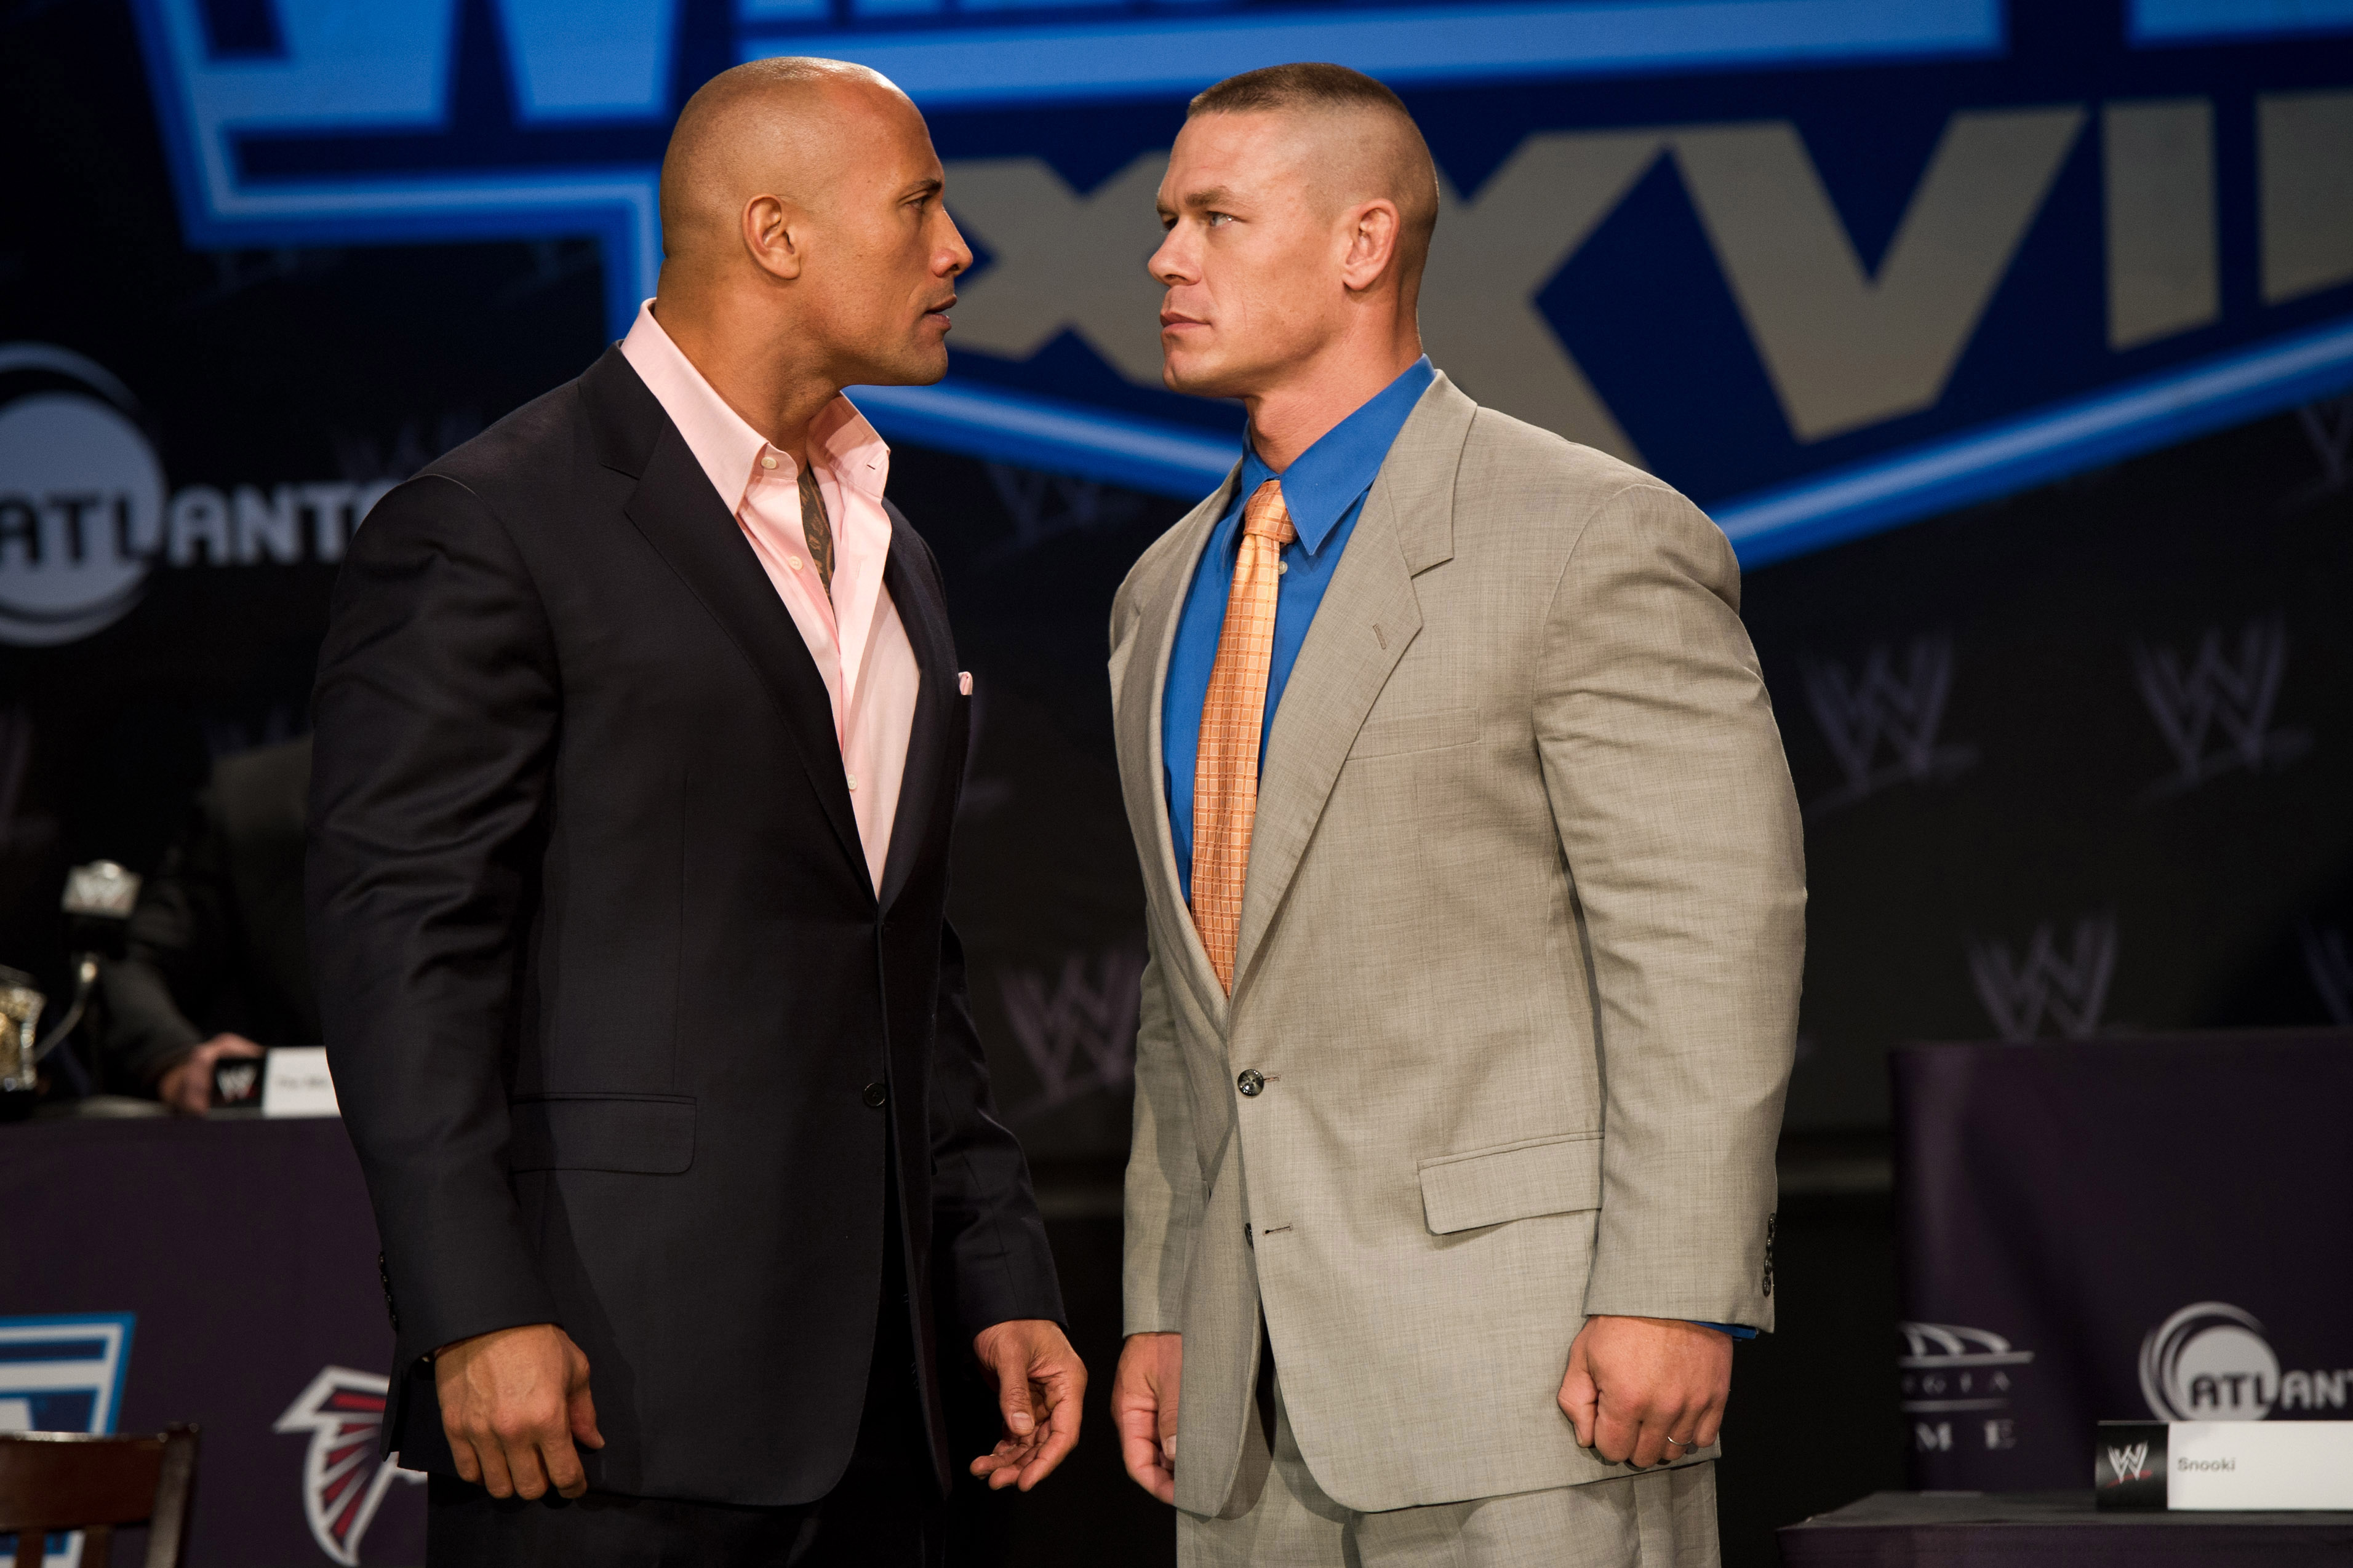 John Cena Apologizes to The Rock for Criticizing His Hollywood Career